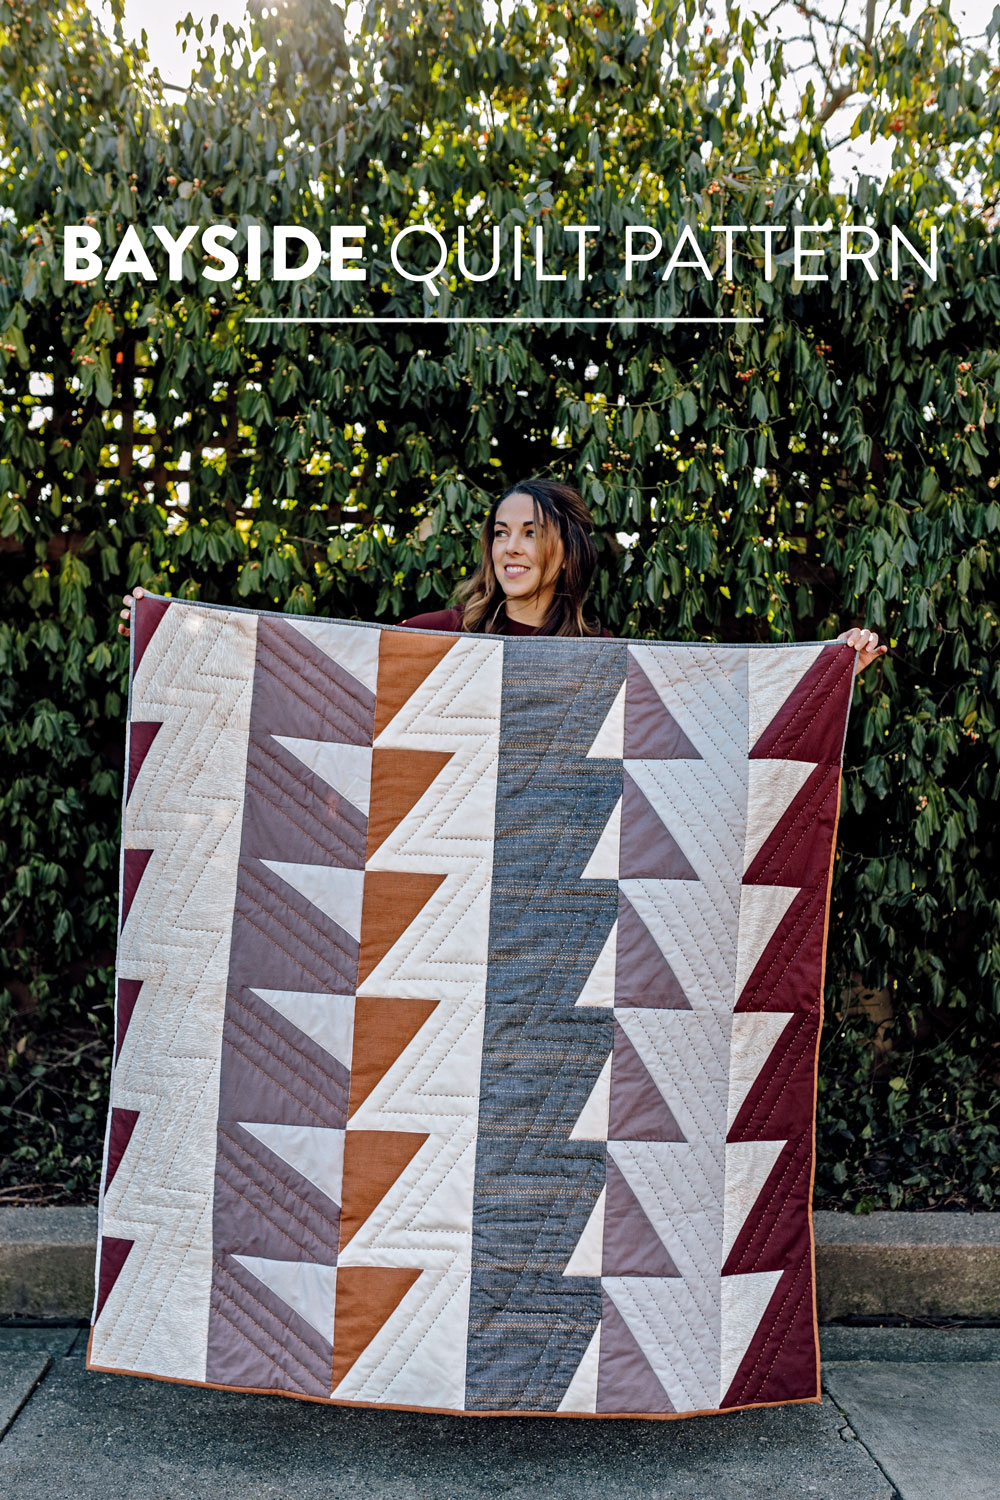 Bayside-quilt-pattern-Suzy-Quilts